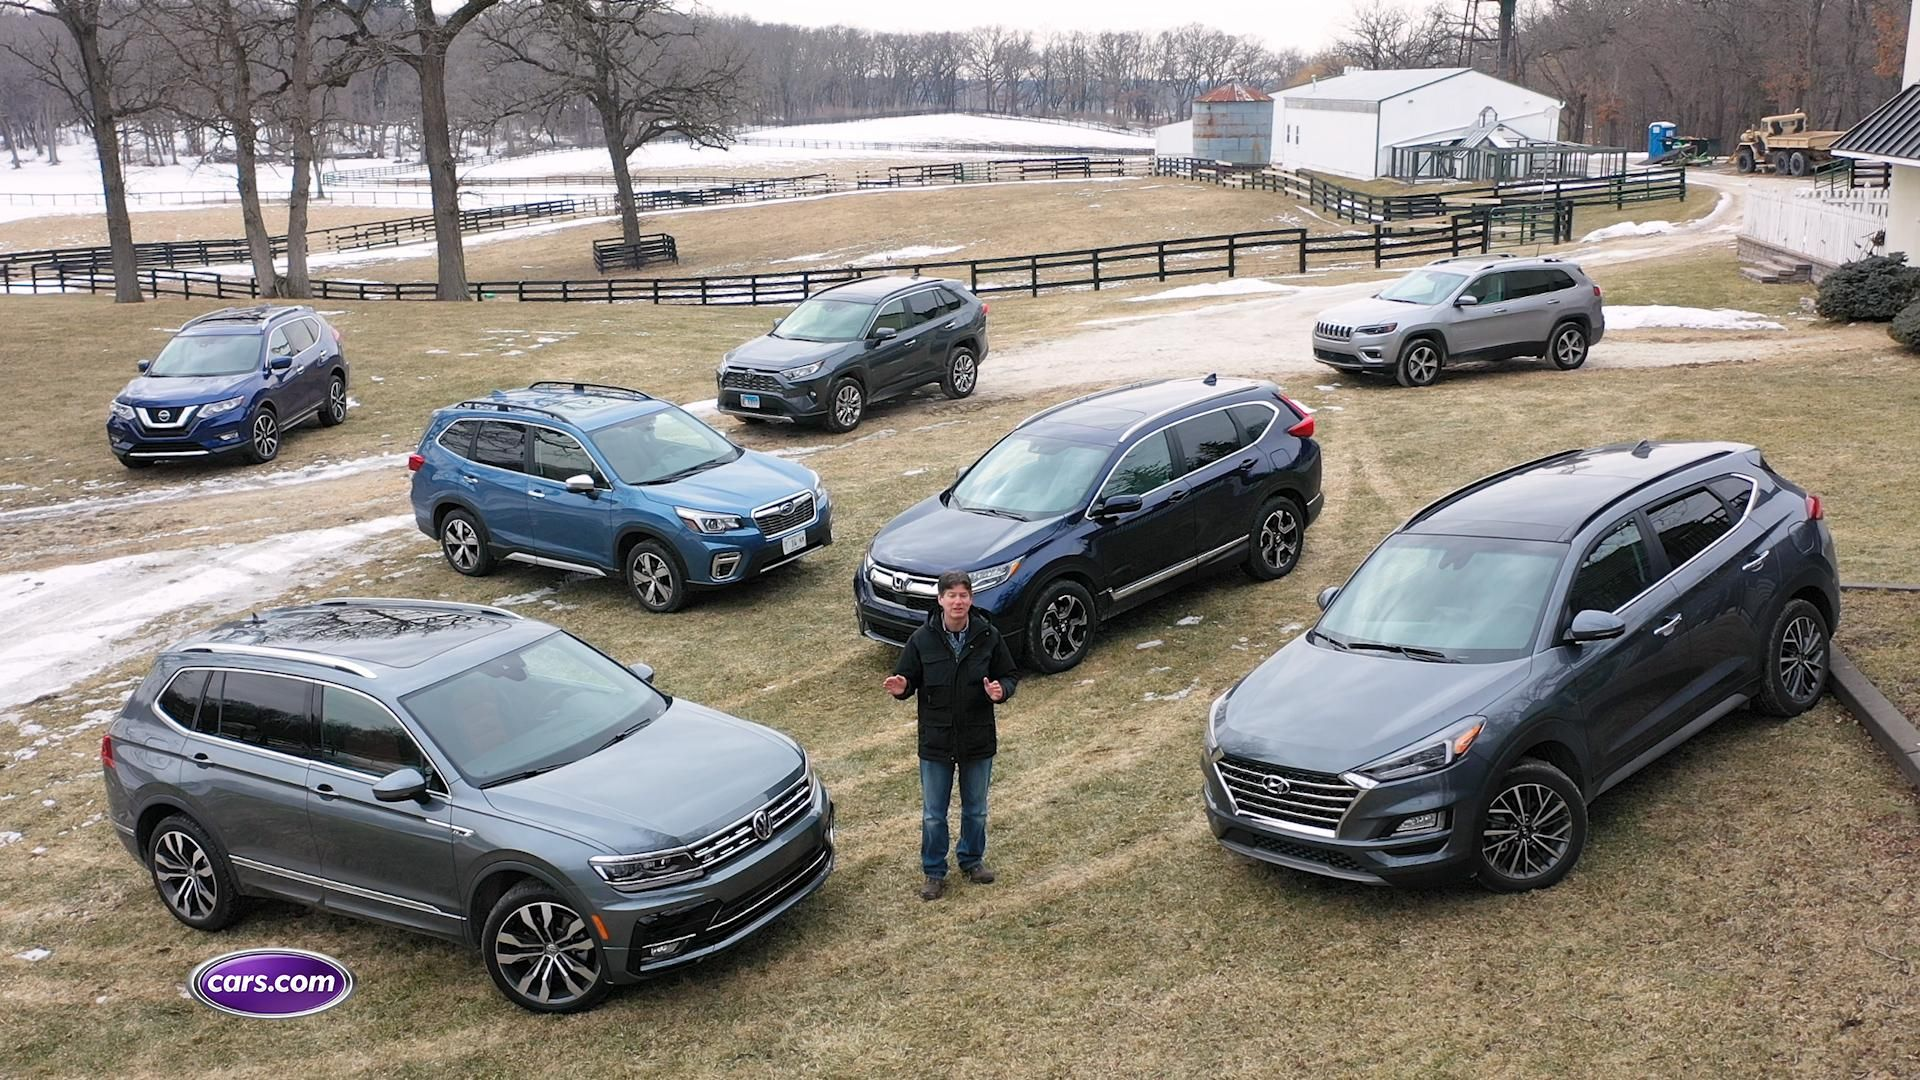 2019 Compact SUV Challenge How Do the CRV, Rogue and